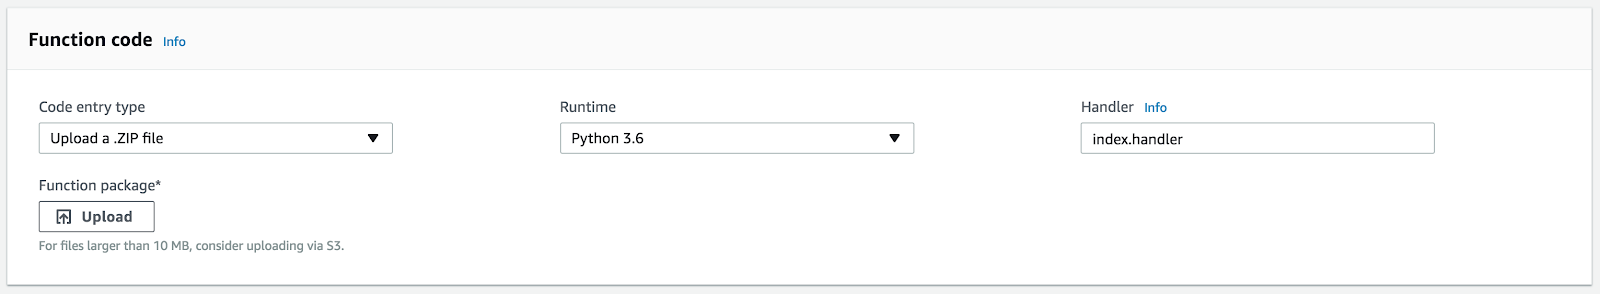 Upload a zip file to Lambda